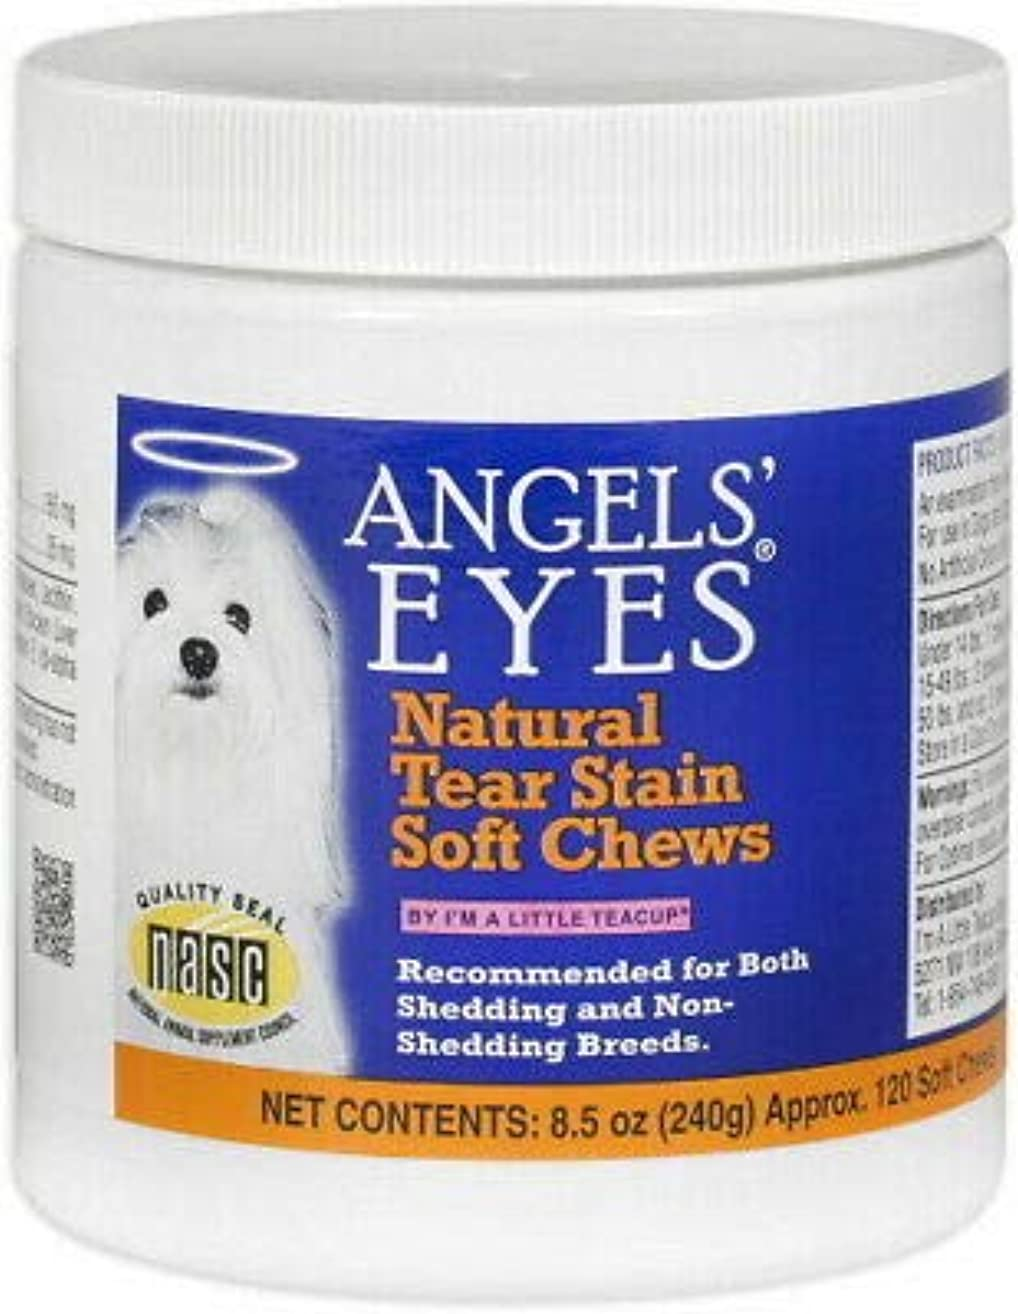 ANGELS' EYES Natural Tear Stain Soft Chews Chicken 120ct